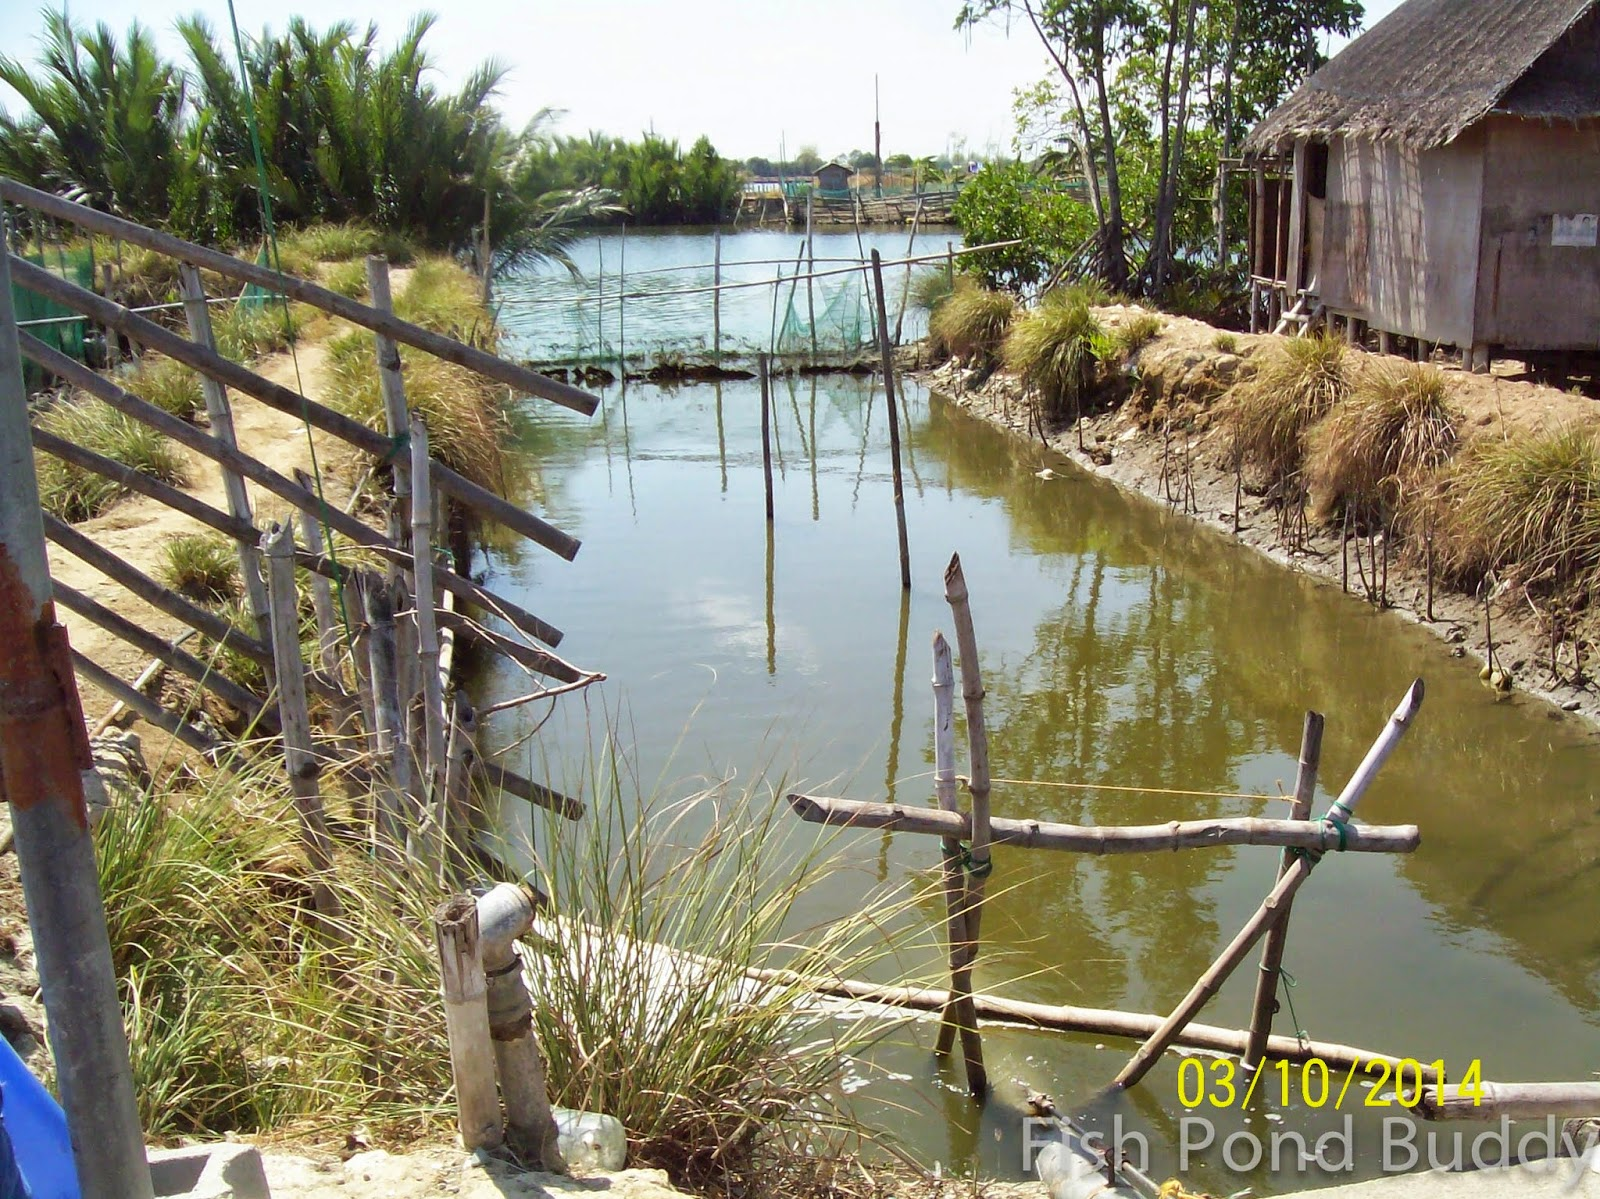 Fish pond buddy features of a class a bangus pond for Fish pond supplies near me